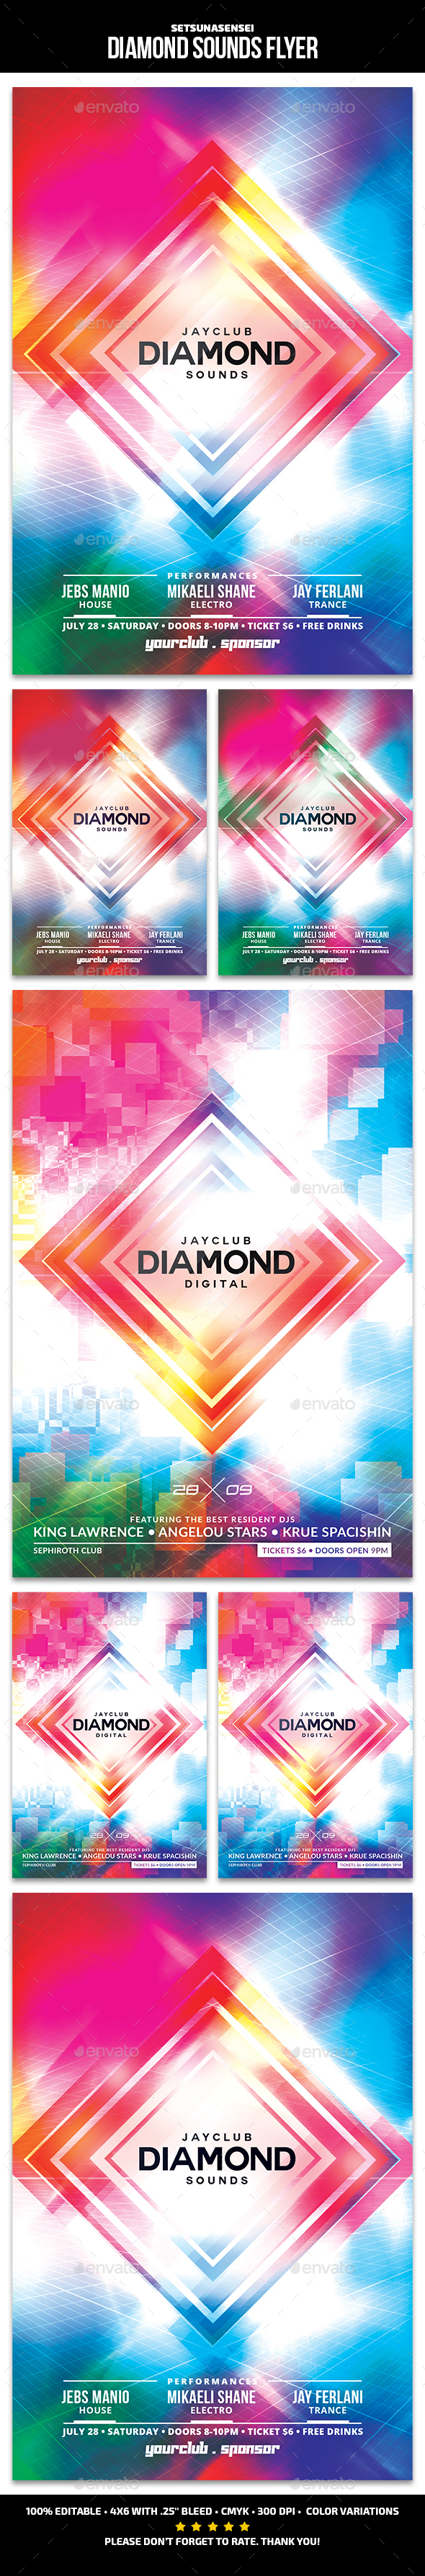 Diamond Sounds Flyer - Clubs & Parties Events